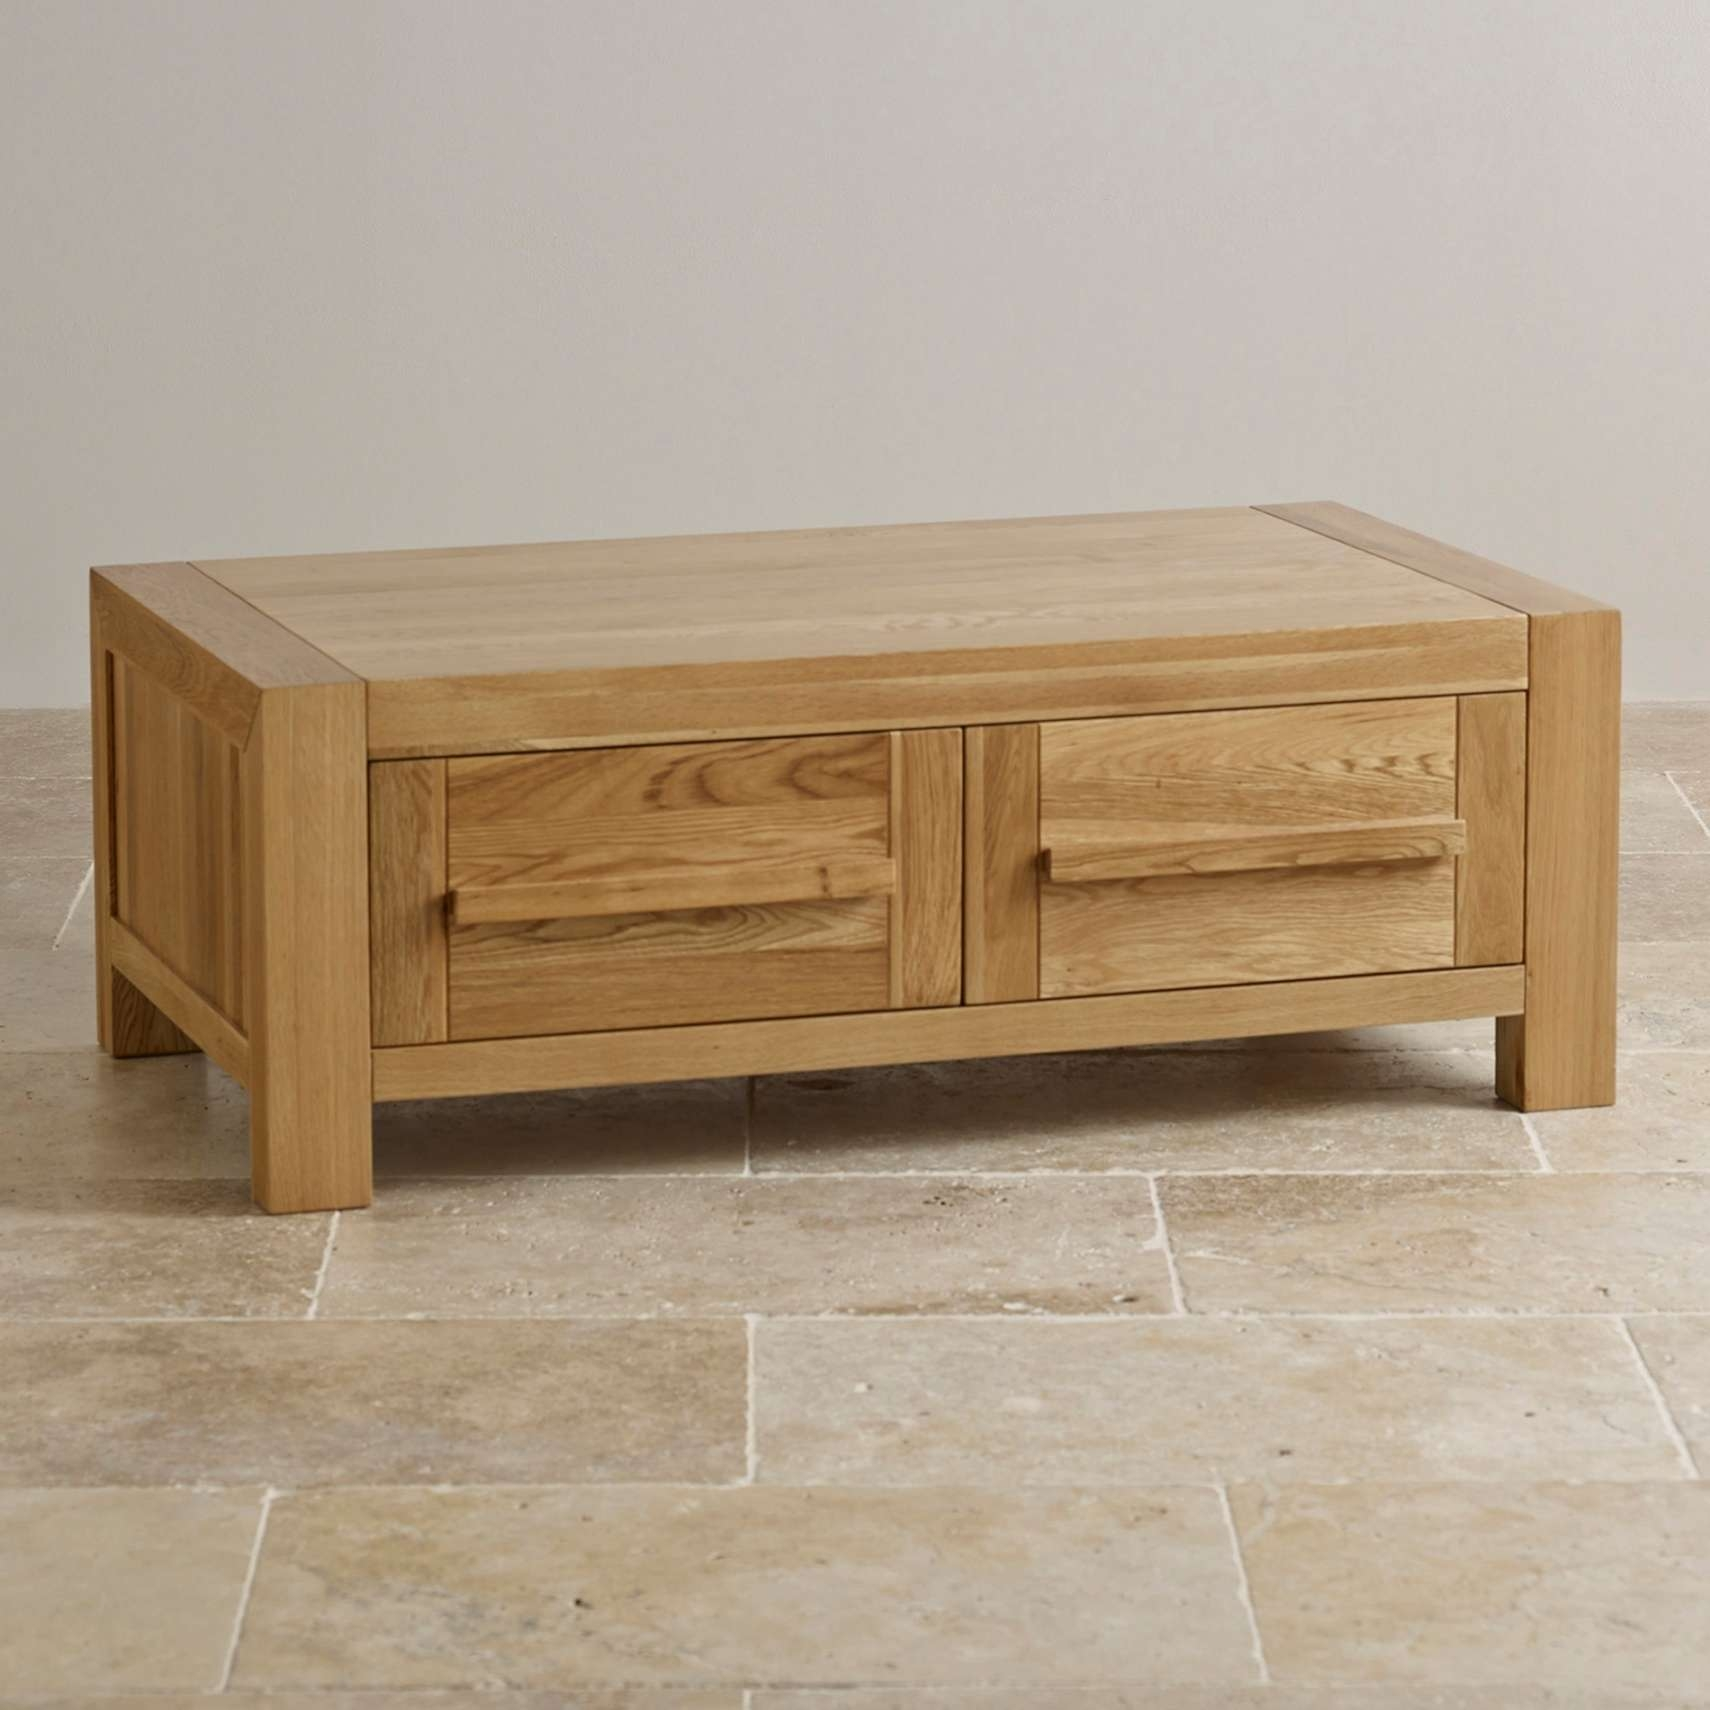 Newest Oak Coffee Table Sets Throughout Elegant Oak Coffee Table Sets (View 11 of 20)